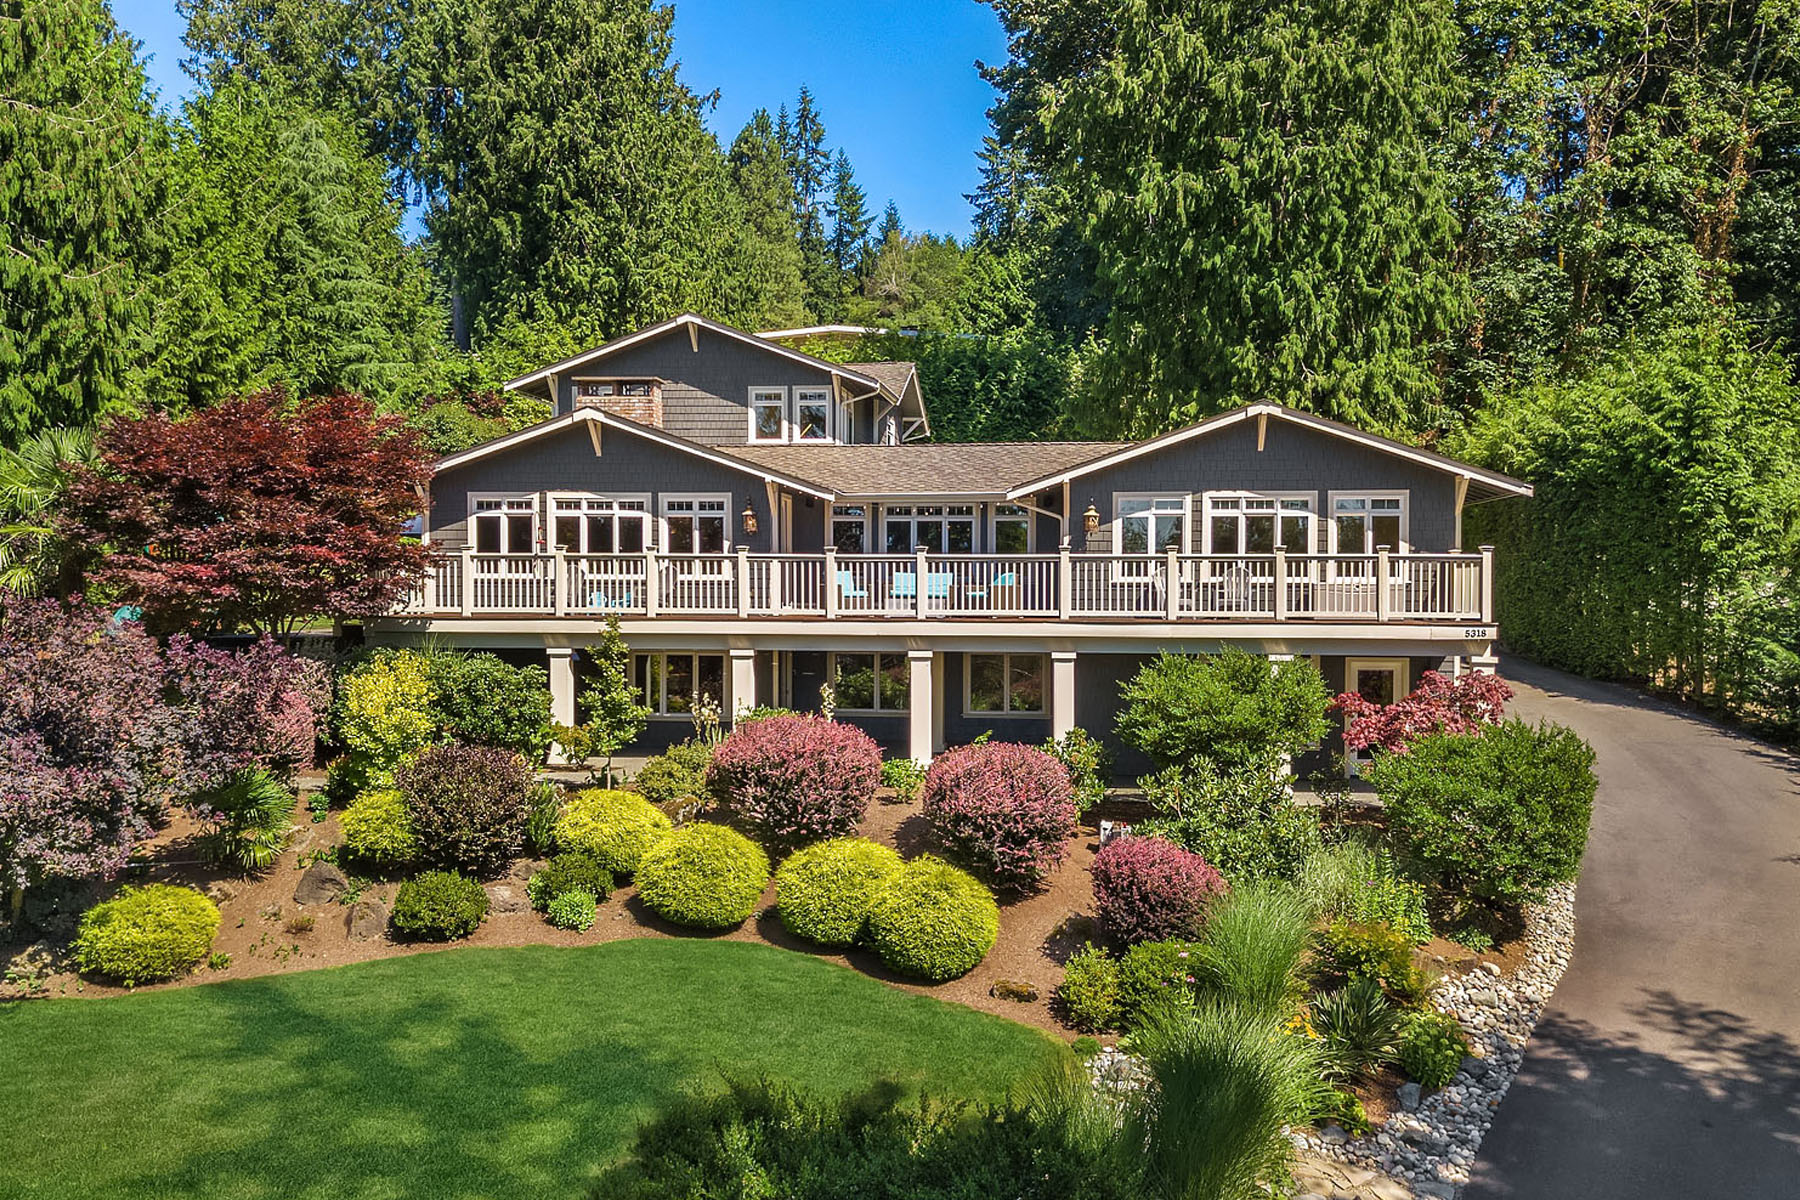 Single Family Homes for Sale at Stunning Issaquah Home 5318 229th Ave SE Issaquah, Washington 98029 United States